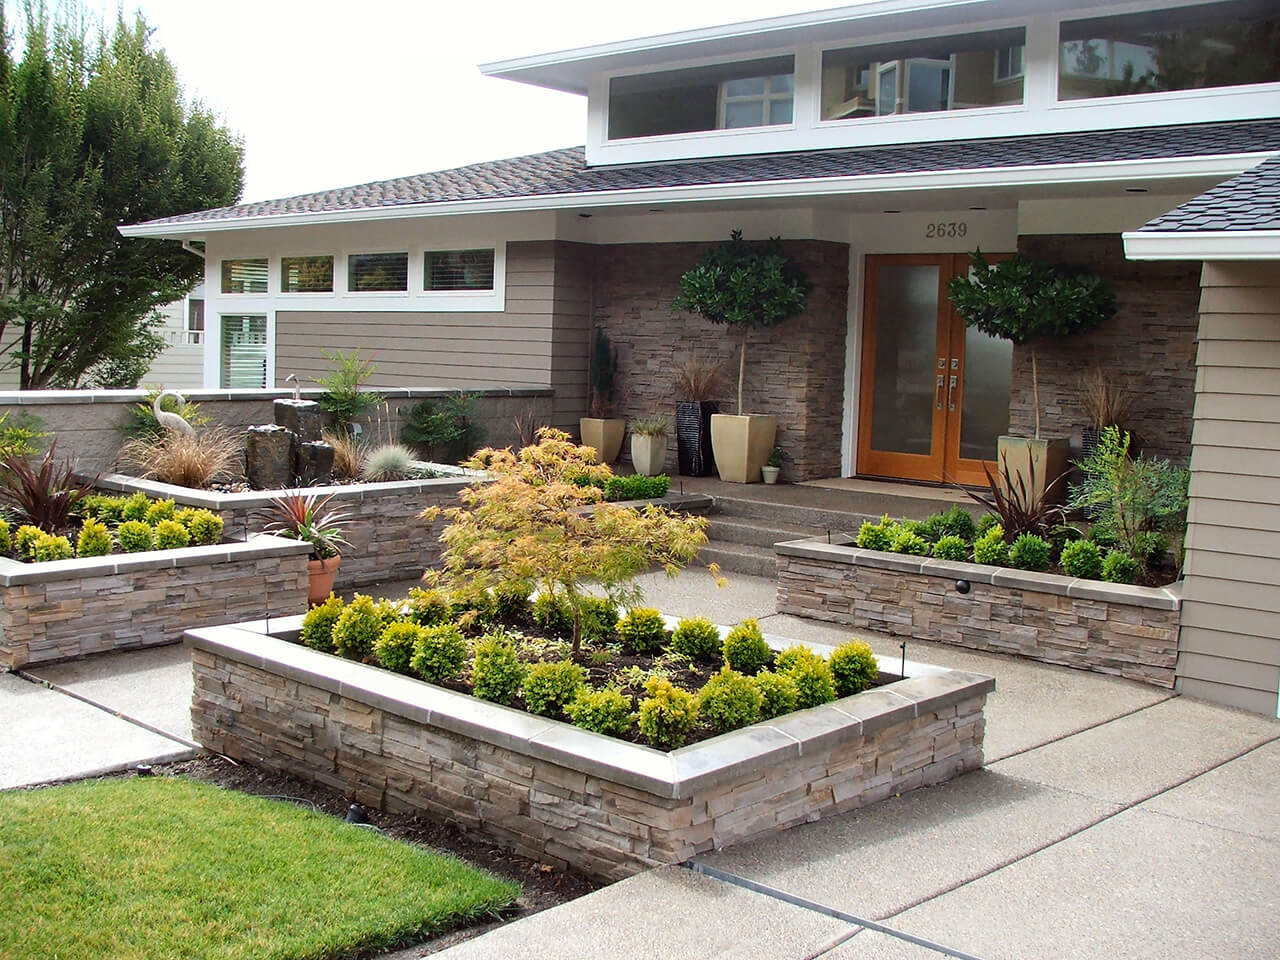 50 best front yard landscaping ideas and garden designs for Front yard decorating ideas